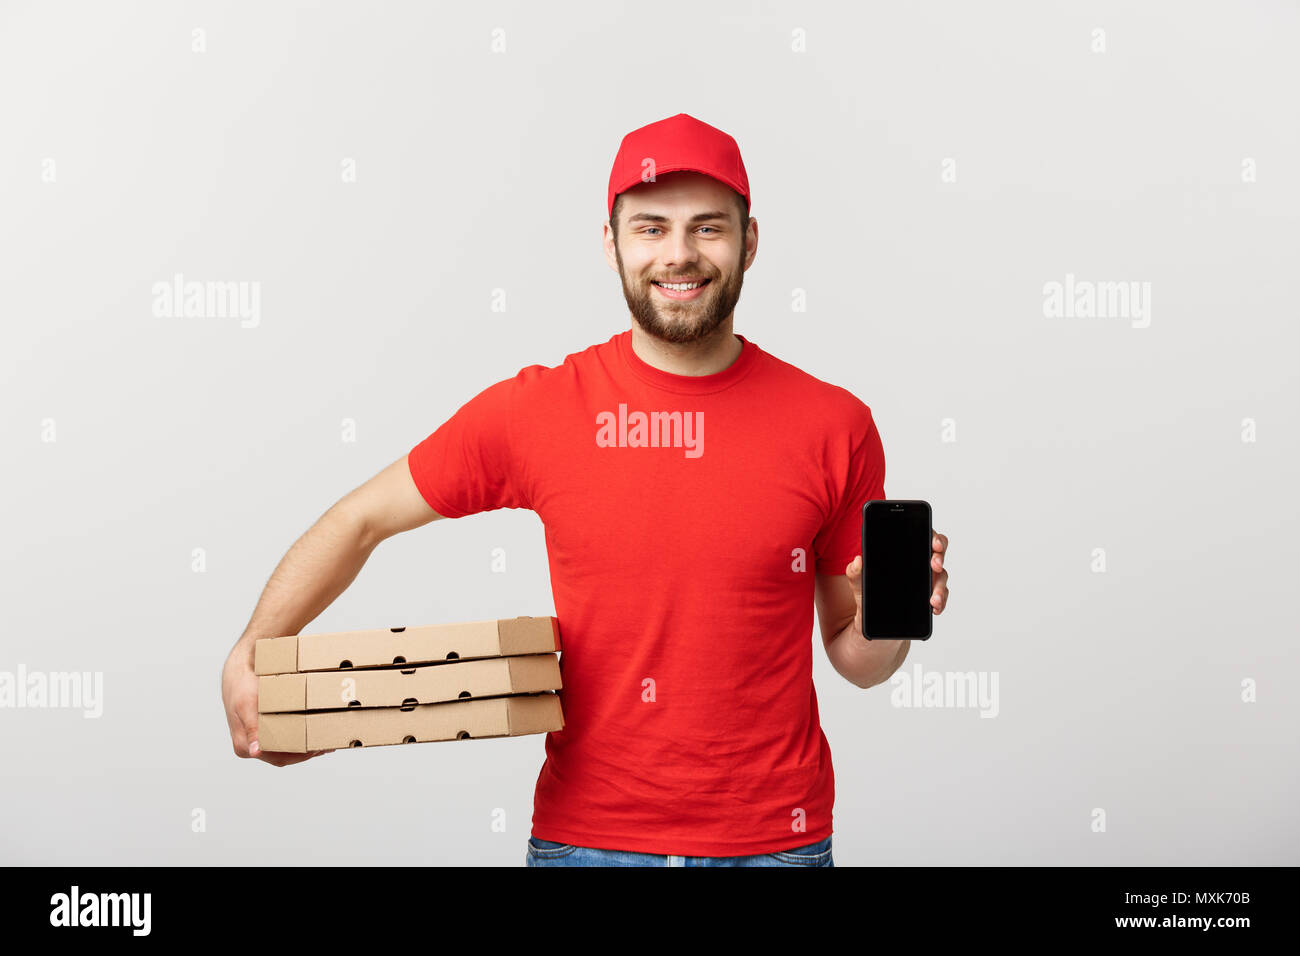 Pizza delivery man holding a mobile and pizza boxes over white background. - Stock Image